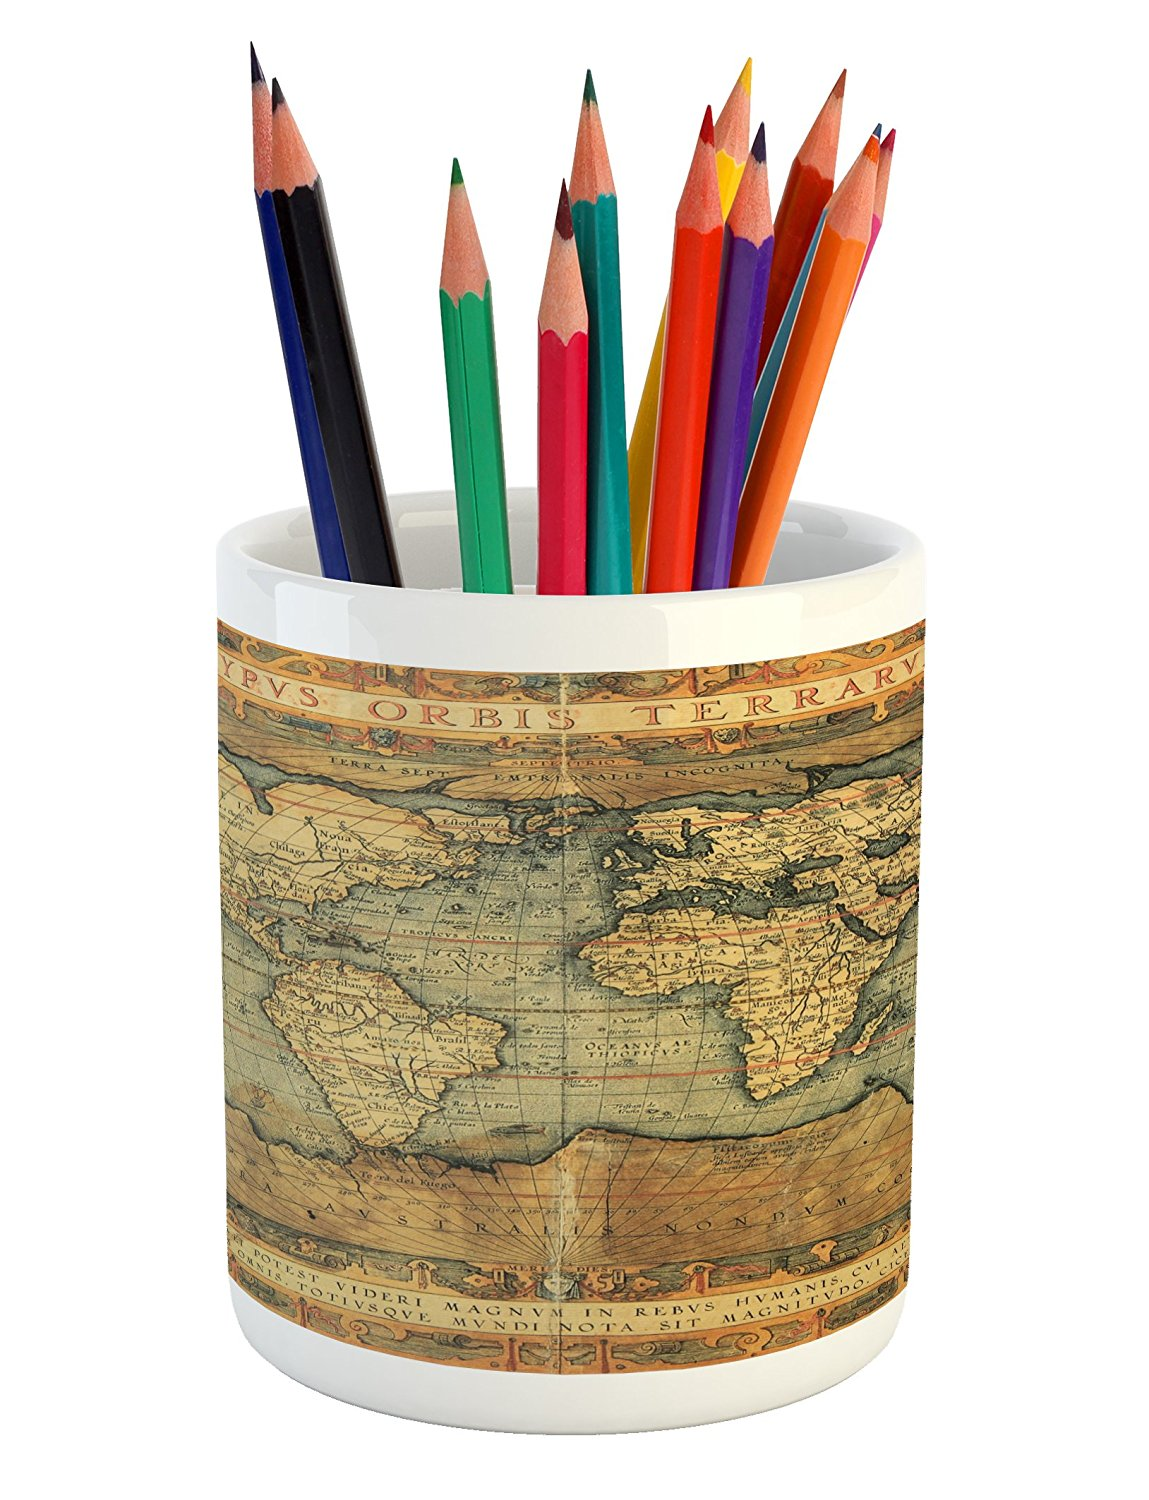 Wanderlust Pencil Pen Holder by Lunarable, 16th Century Map of the World History Adventure Civilization, Printed Ceramic Pencil Pen Holder for Desk Office Accessory, Orange Sand Brown Army Green